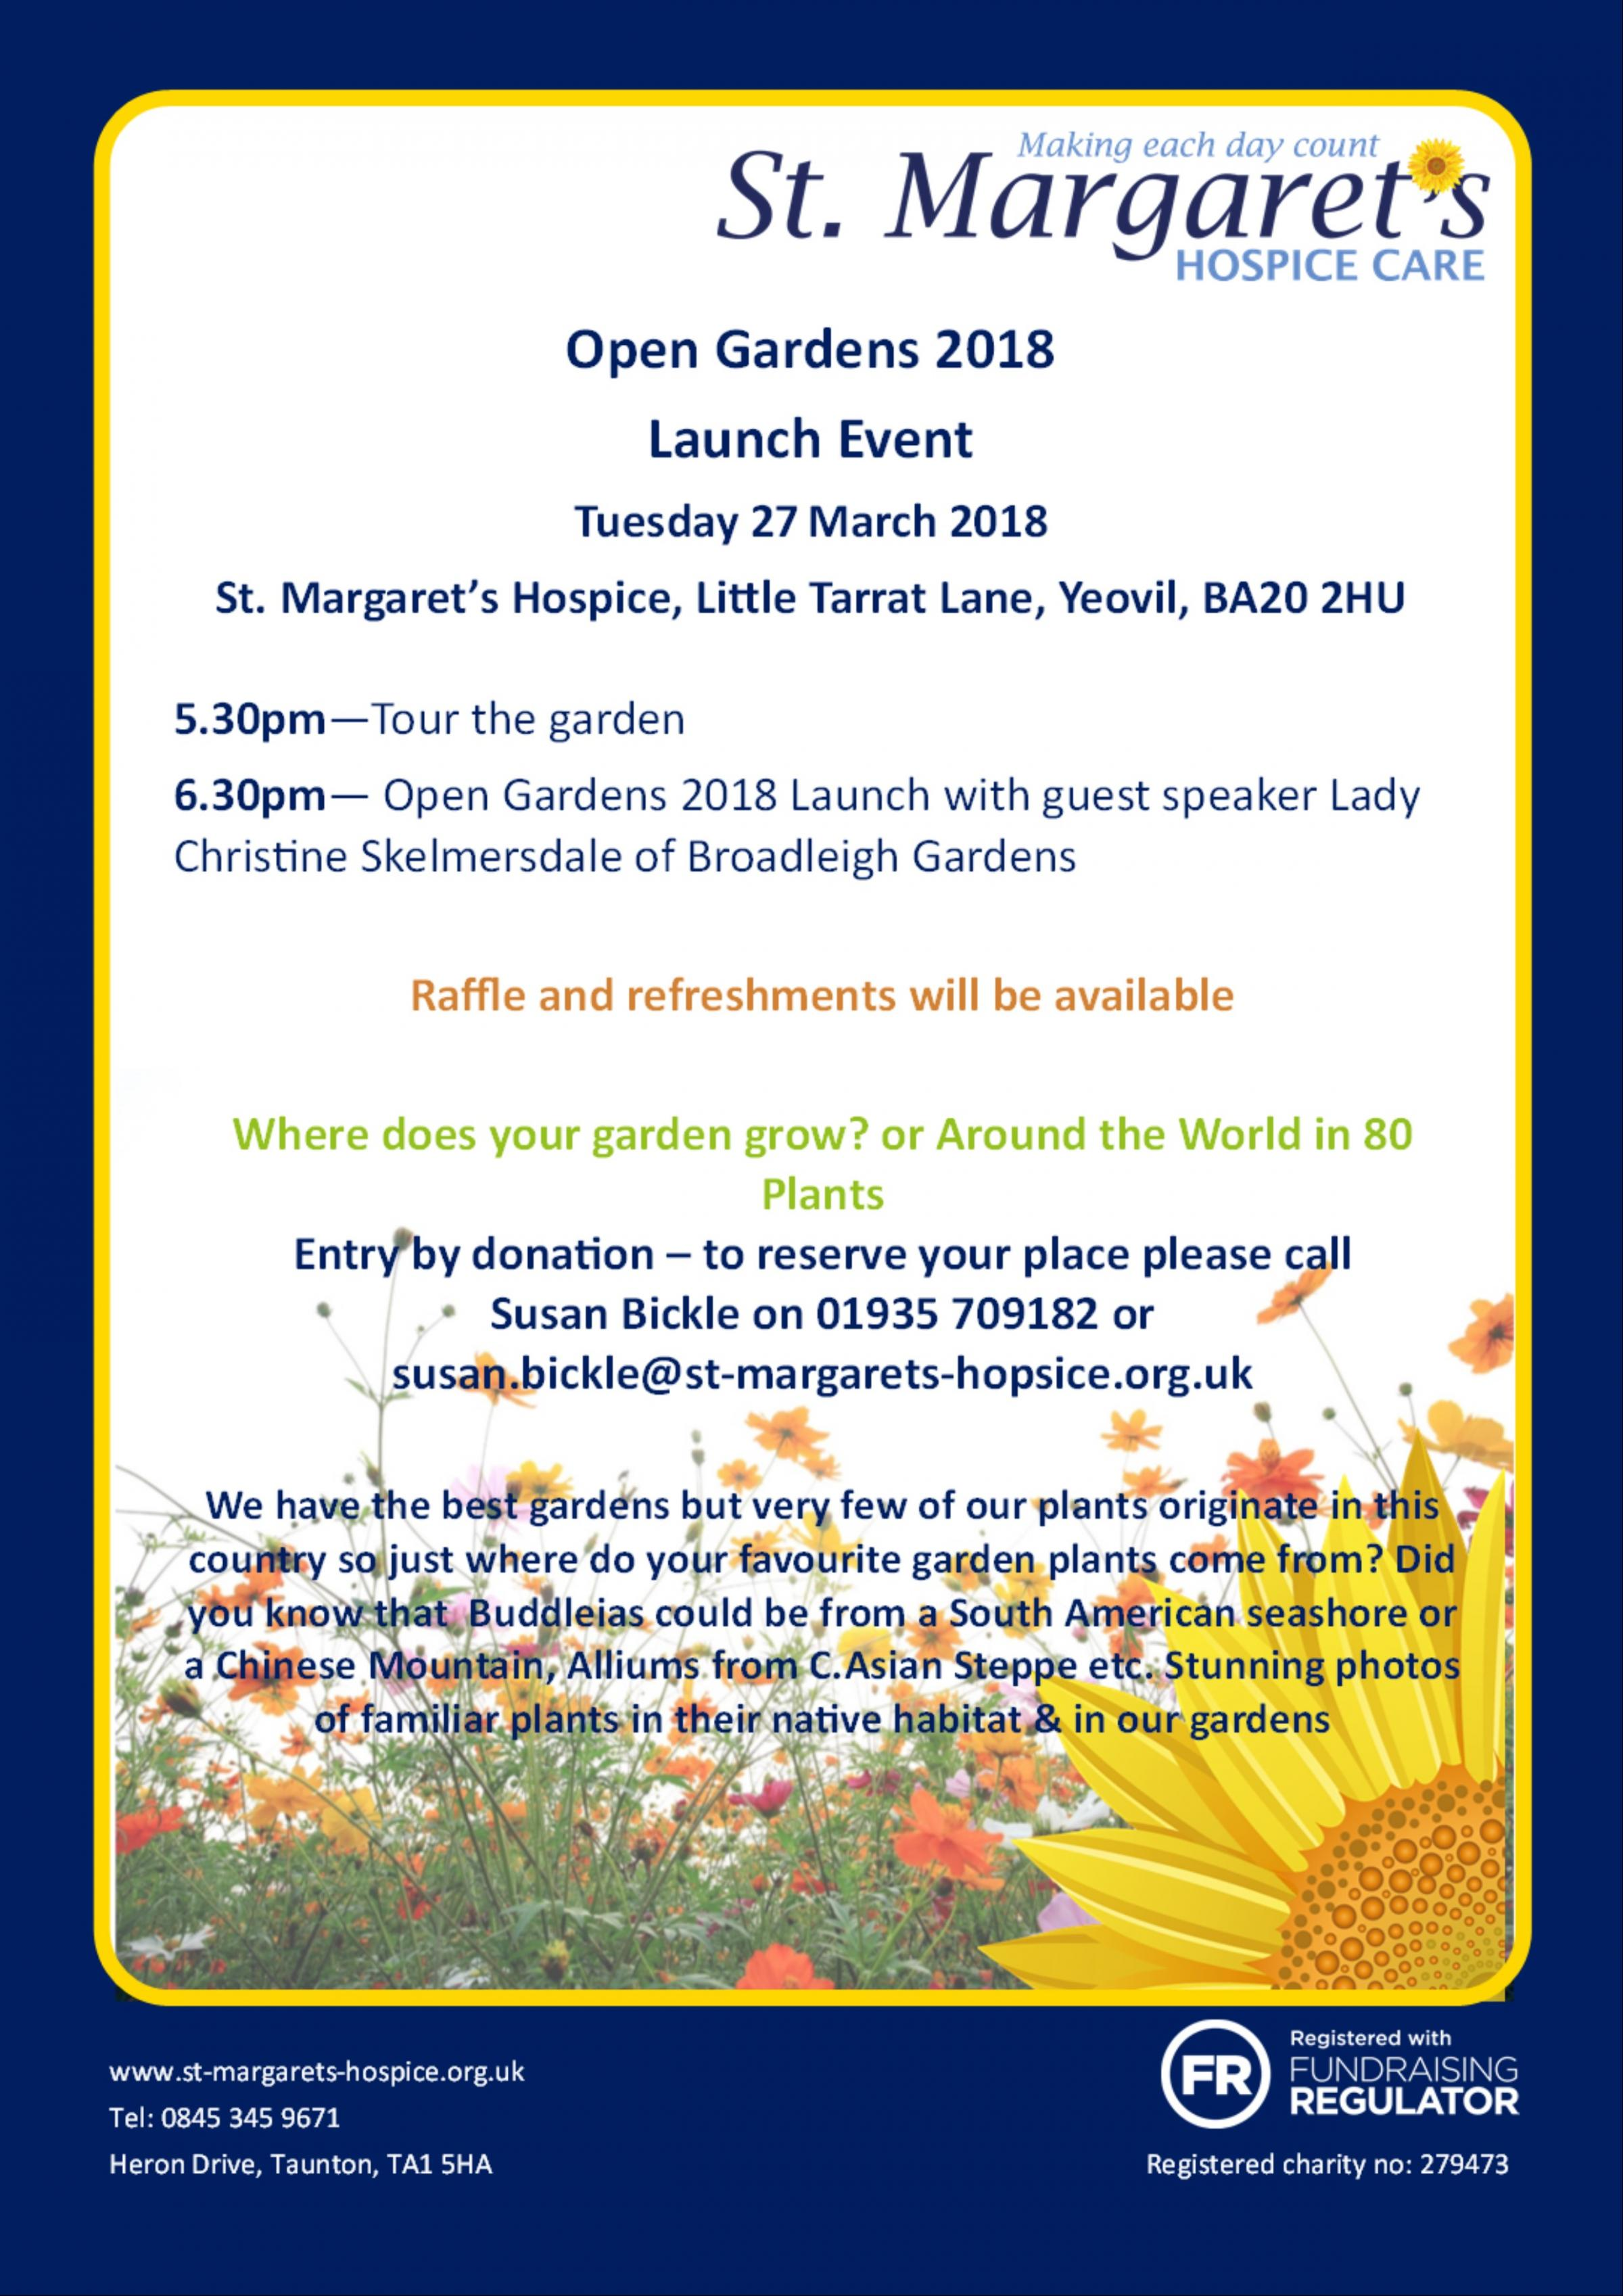 St Margaret's Open Garden Launch